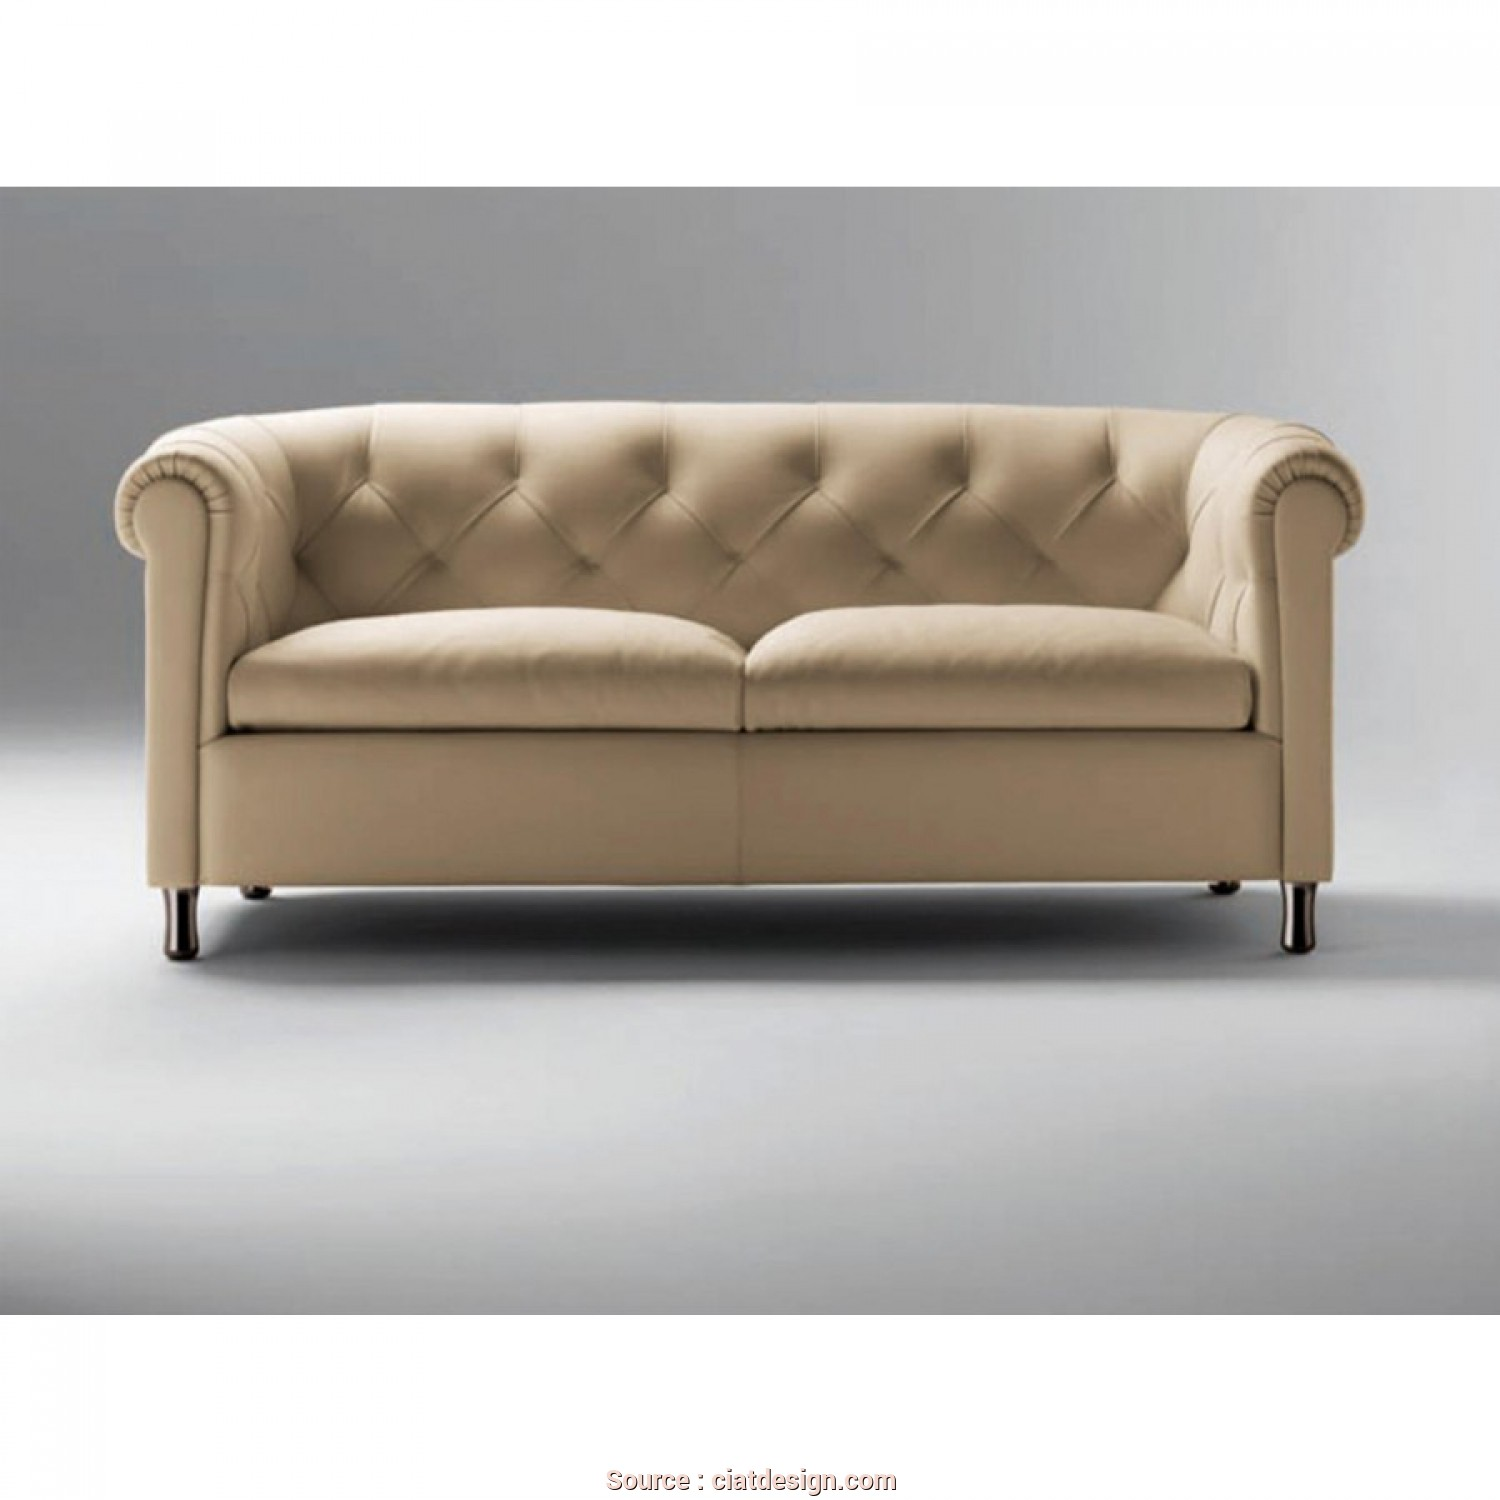 Divano Frau Arcadia, Eccezionale Arcadia 2 Seater Sofa By Poltrona Frau. Design By R. & D. Frau Shop Online On CiatDesign